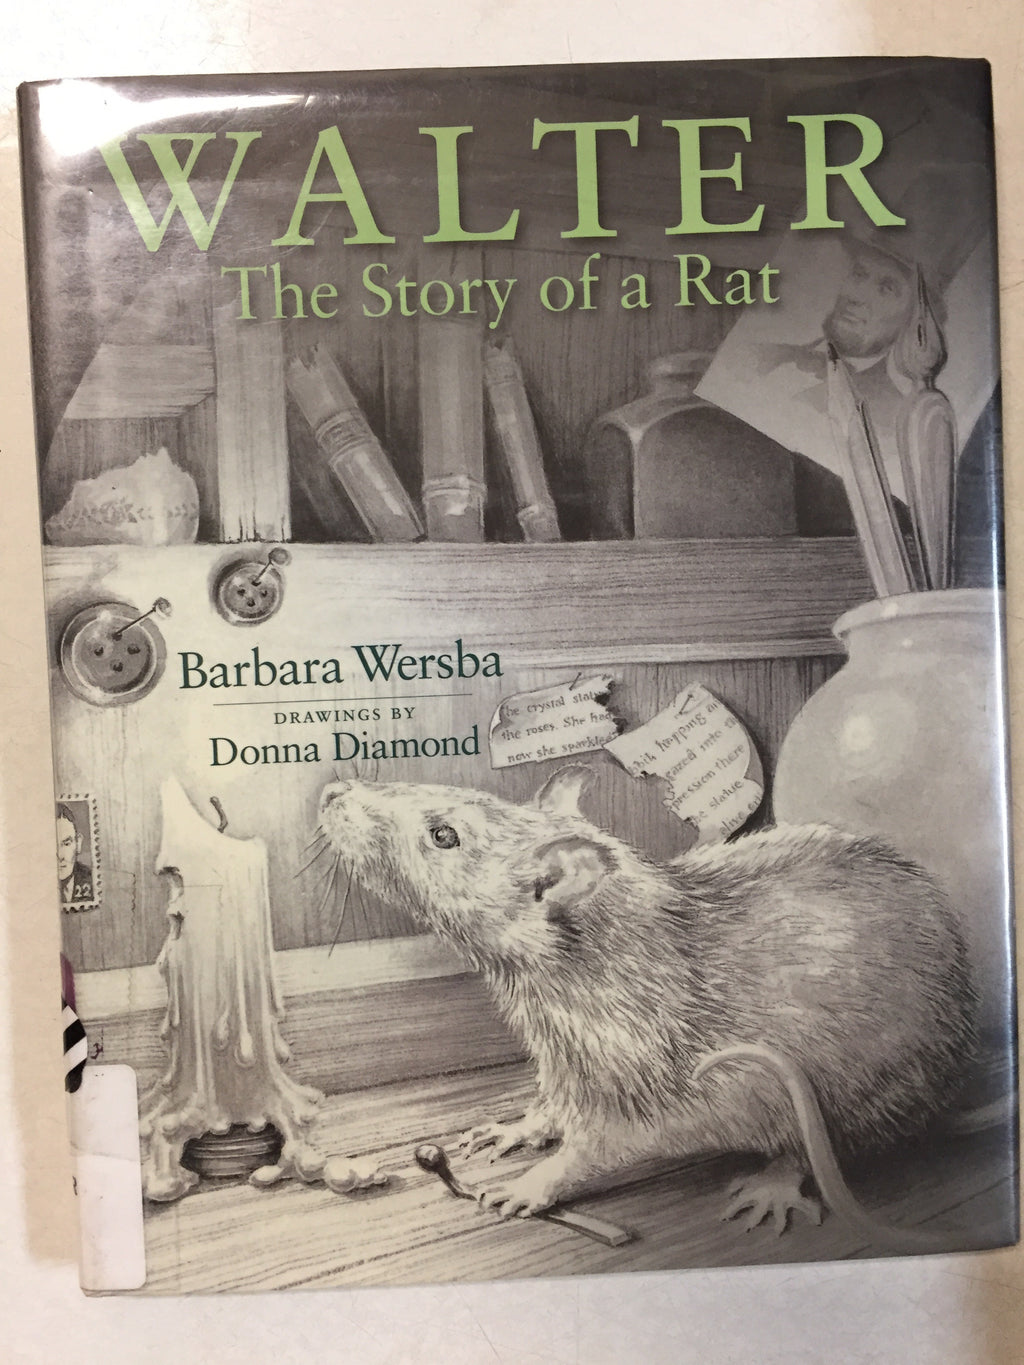 Walter The Story of a Rat - Slickcatbooks